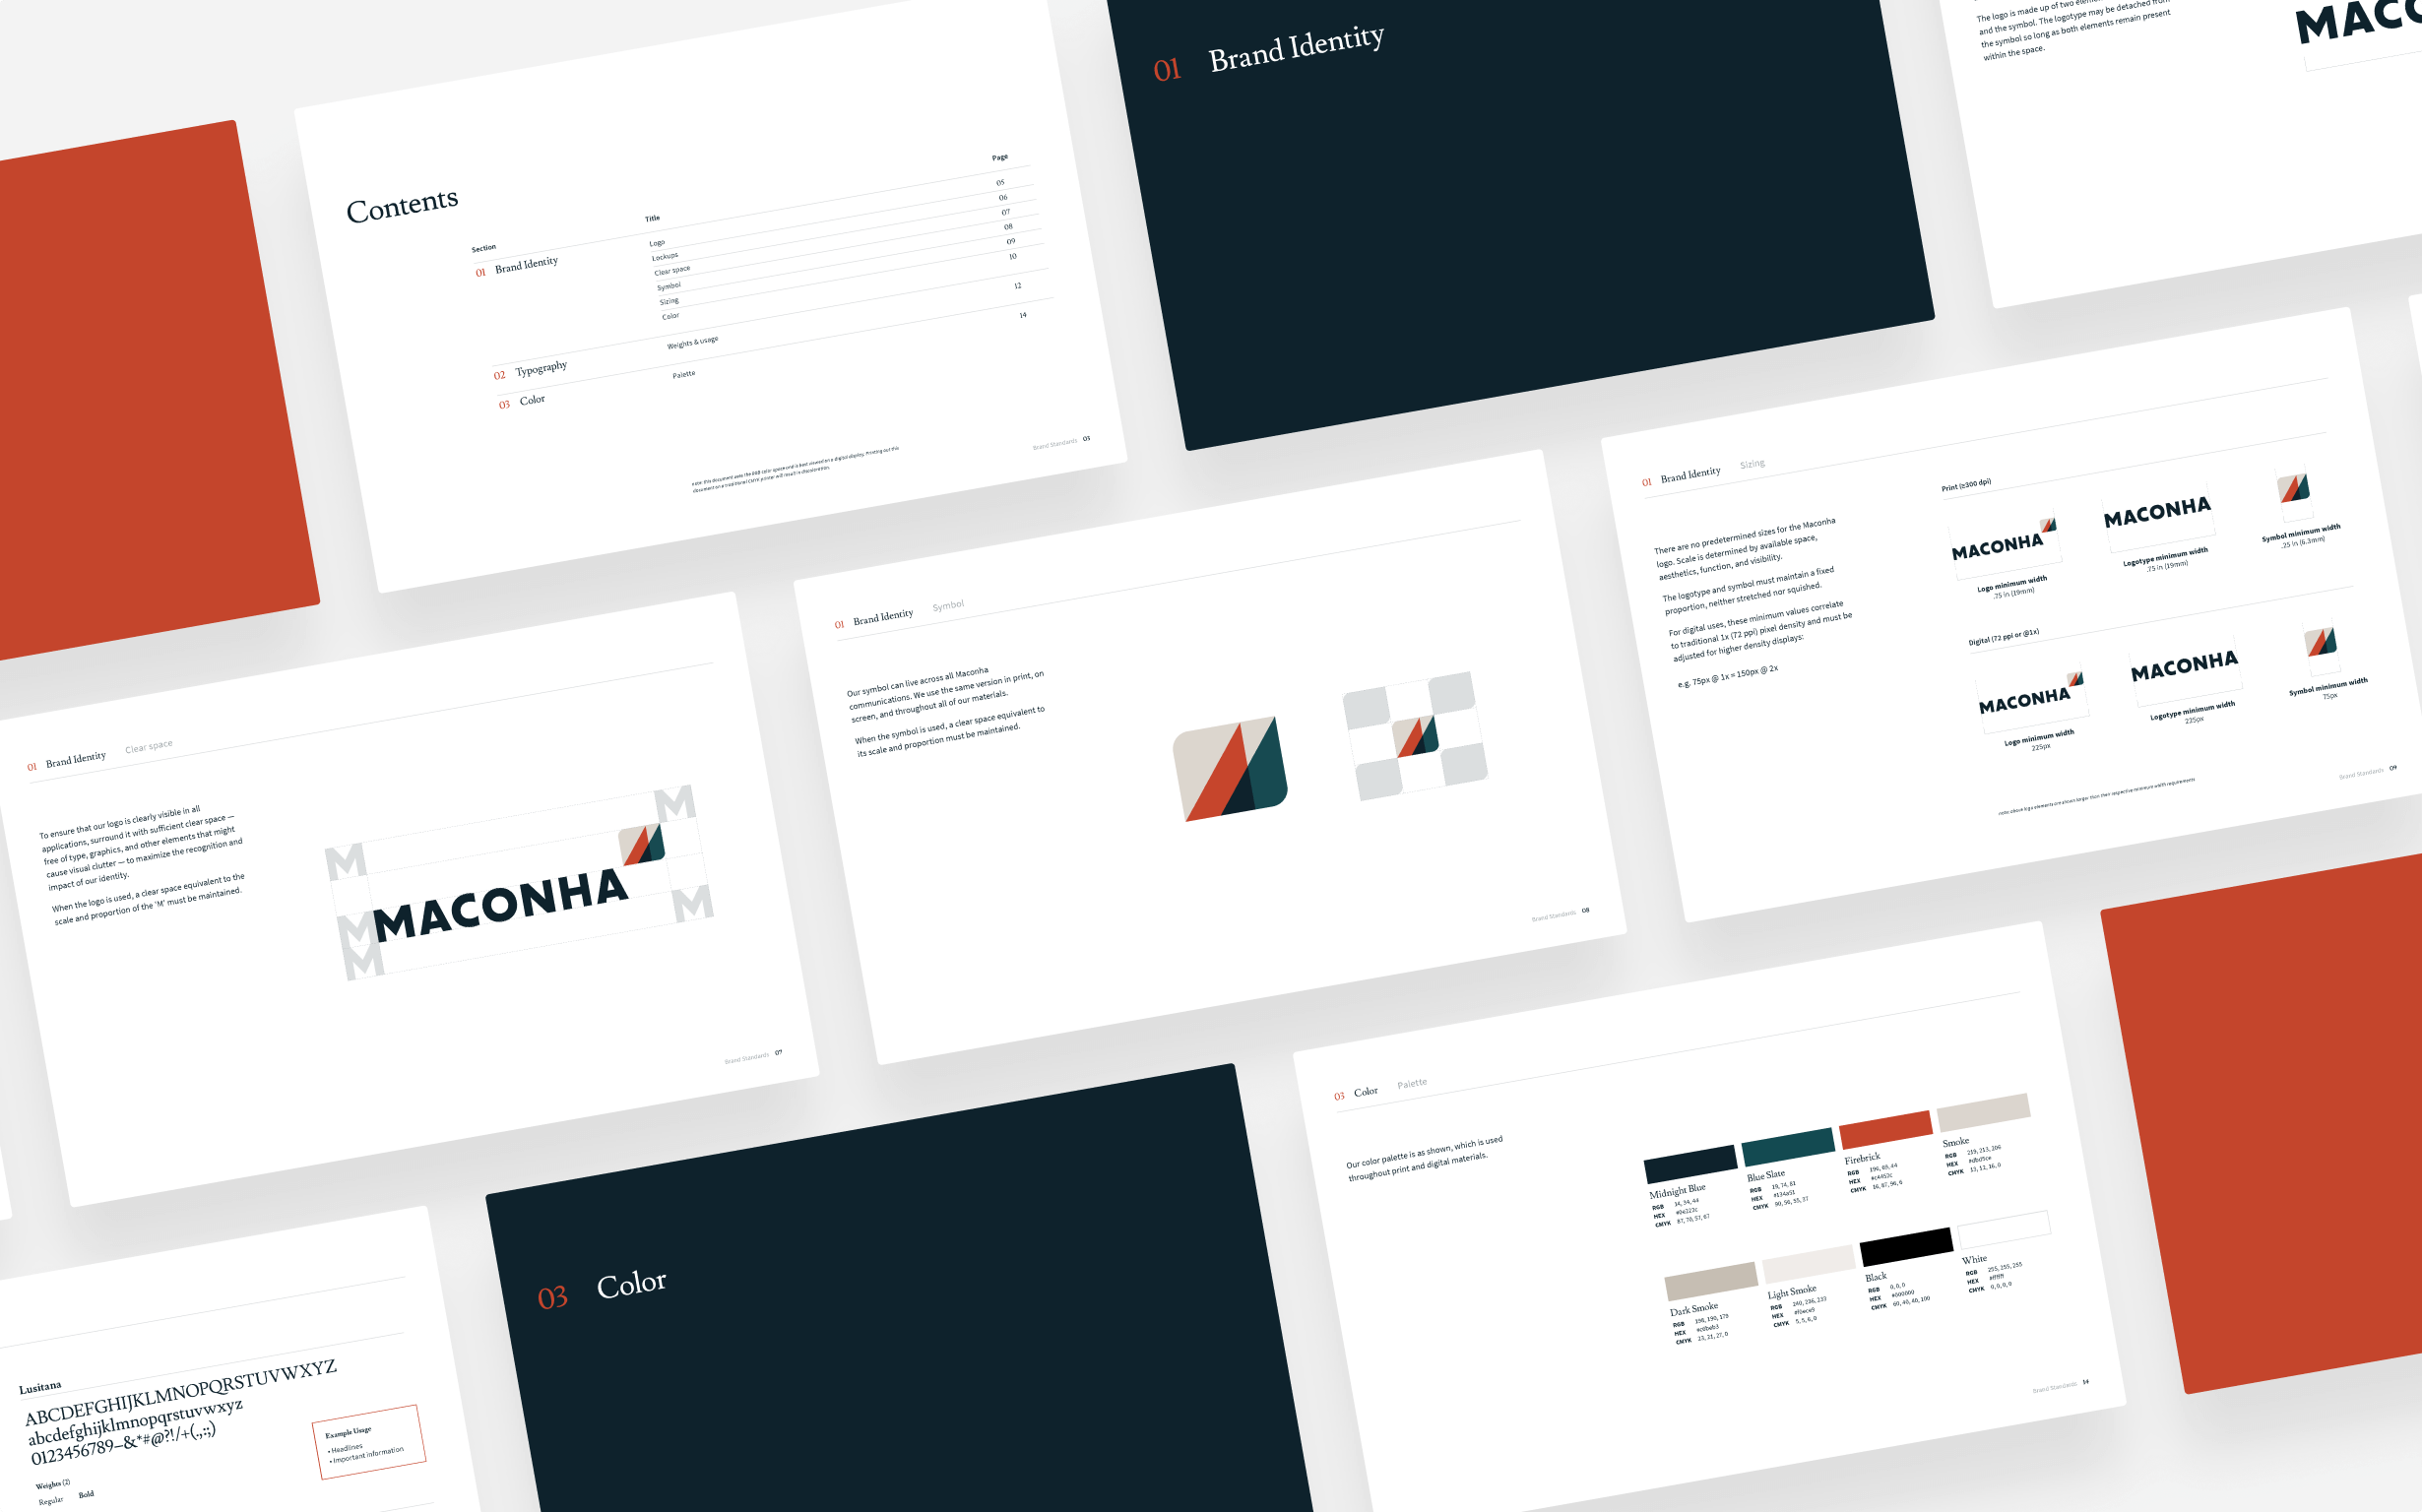 A slide deck explaining how to apply the Maconha brand guidelines.